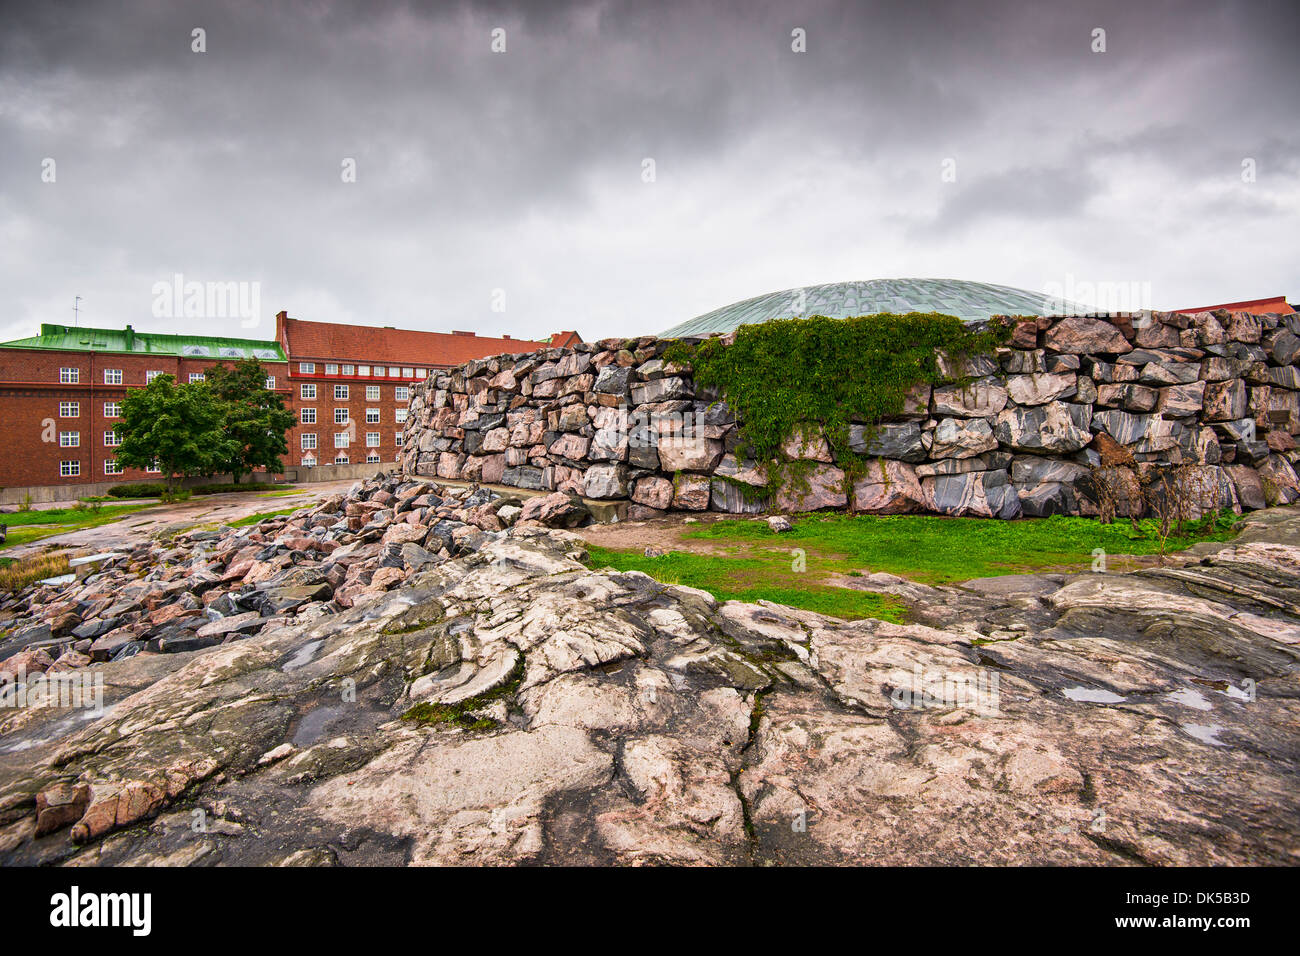 Temppeliaukio Church in Helsinki, Finland. The interior was excavated and built directly out of solid rock. - Stock Image